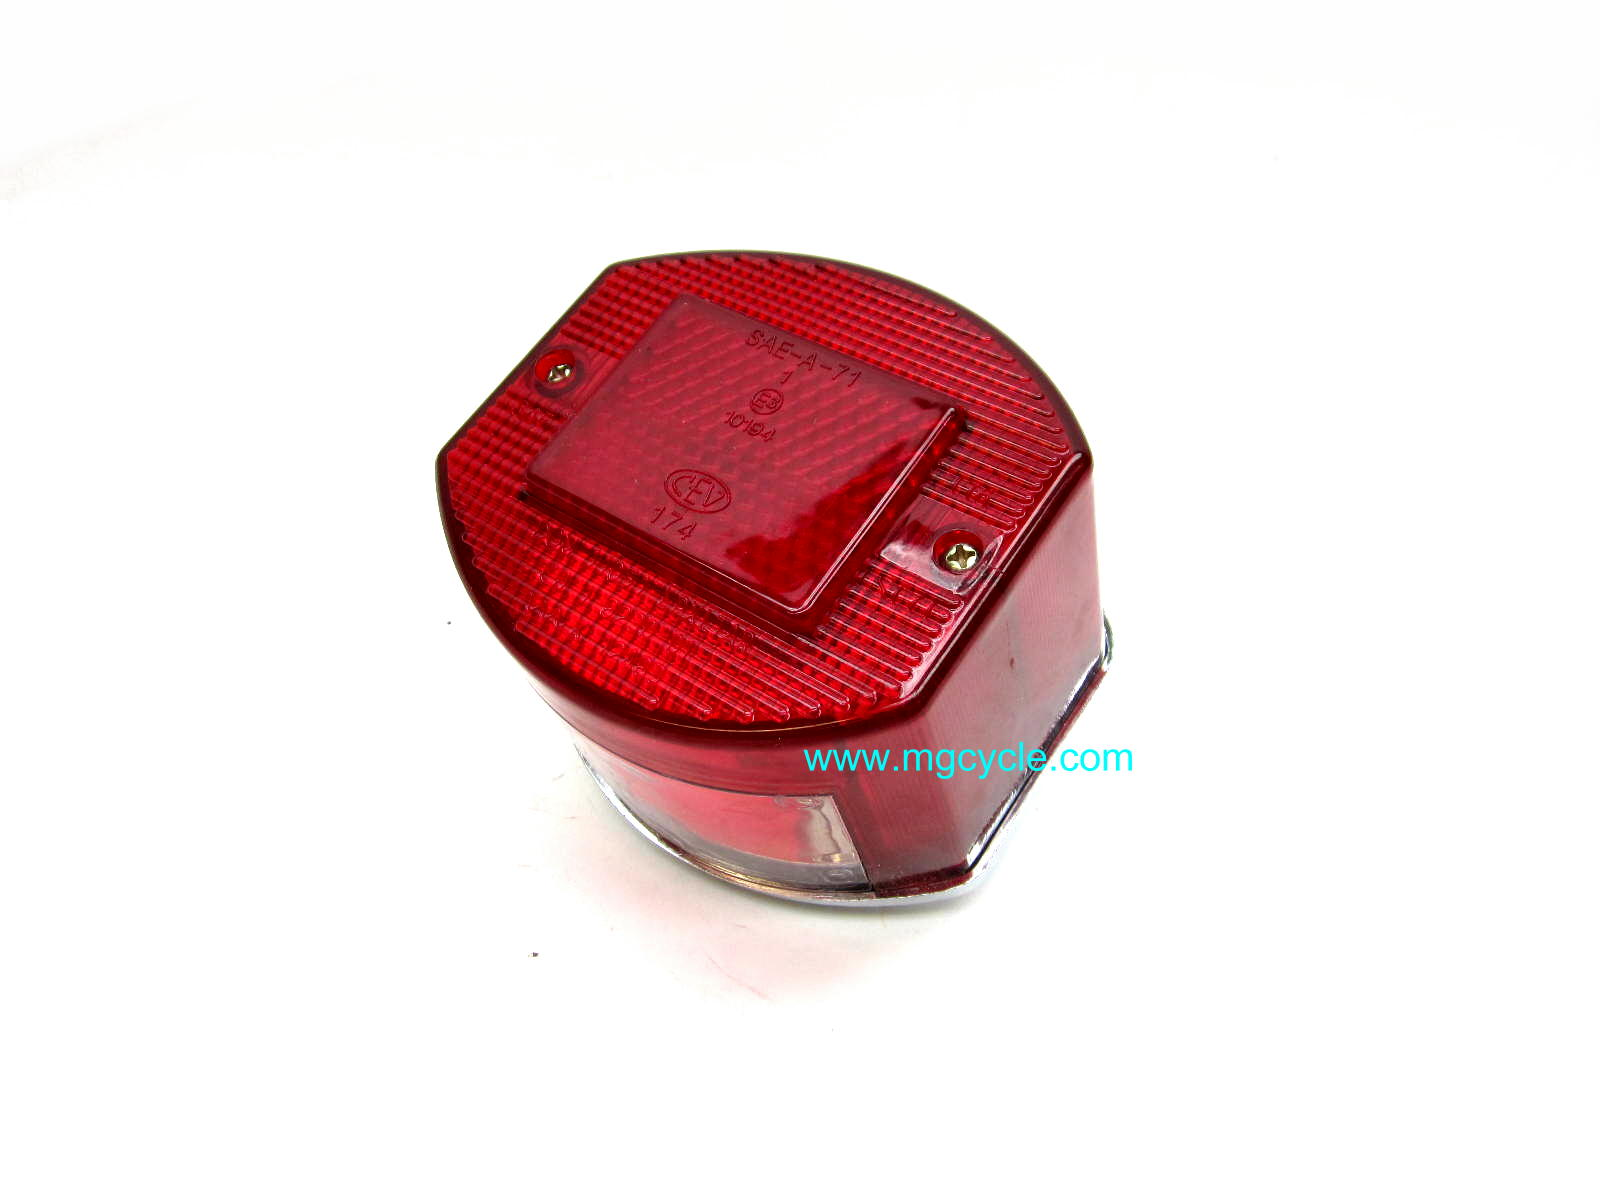 CEV 9350 tail light unit, semi-round, flat sides, chrome base